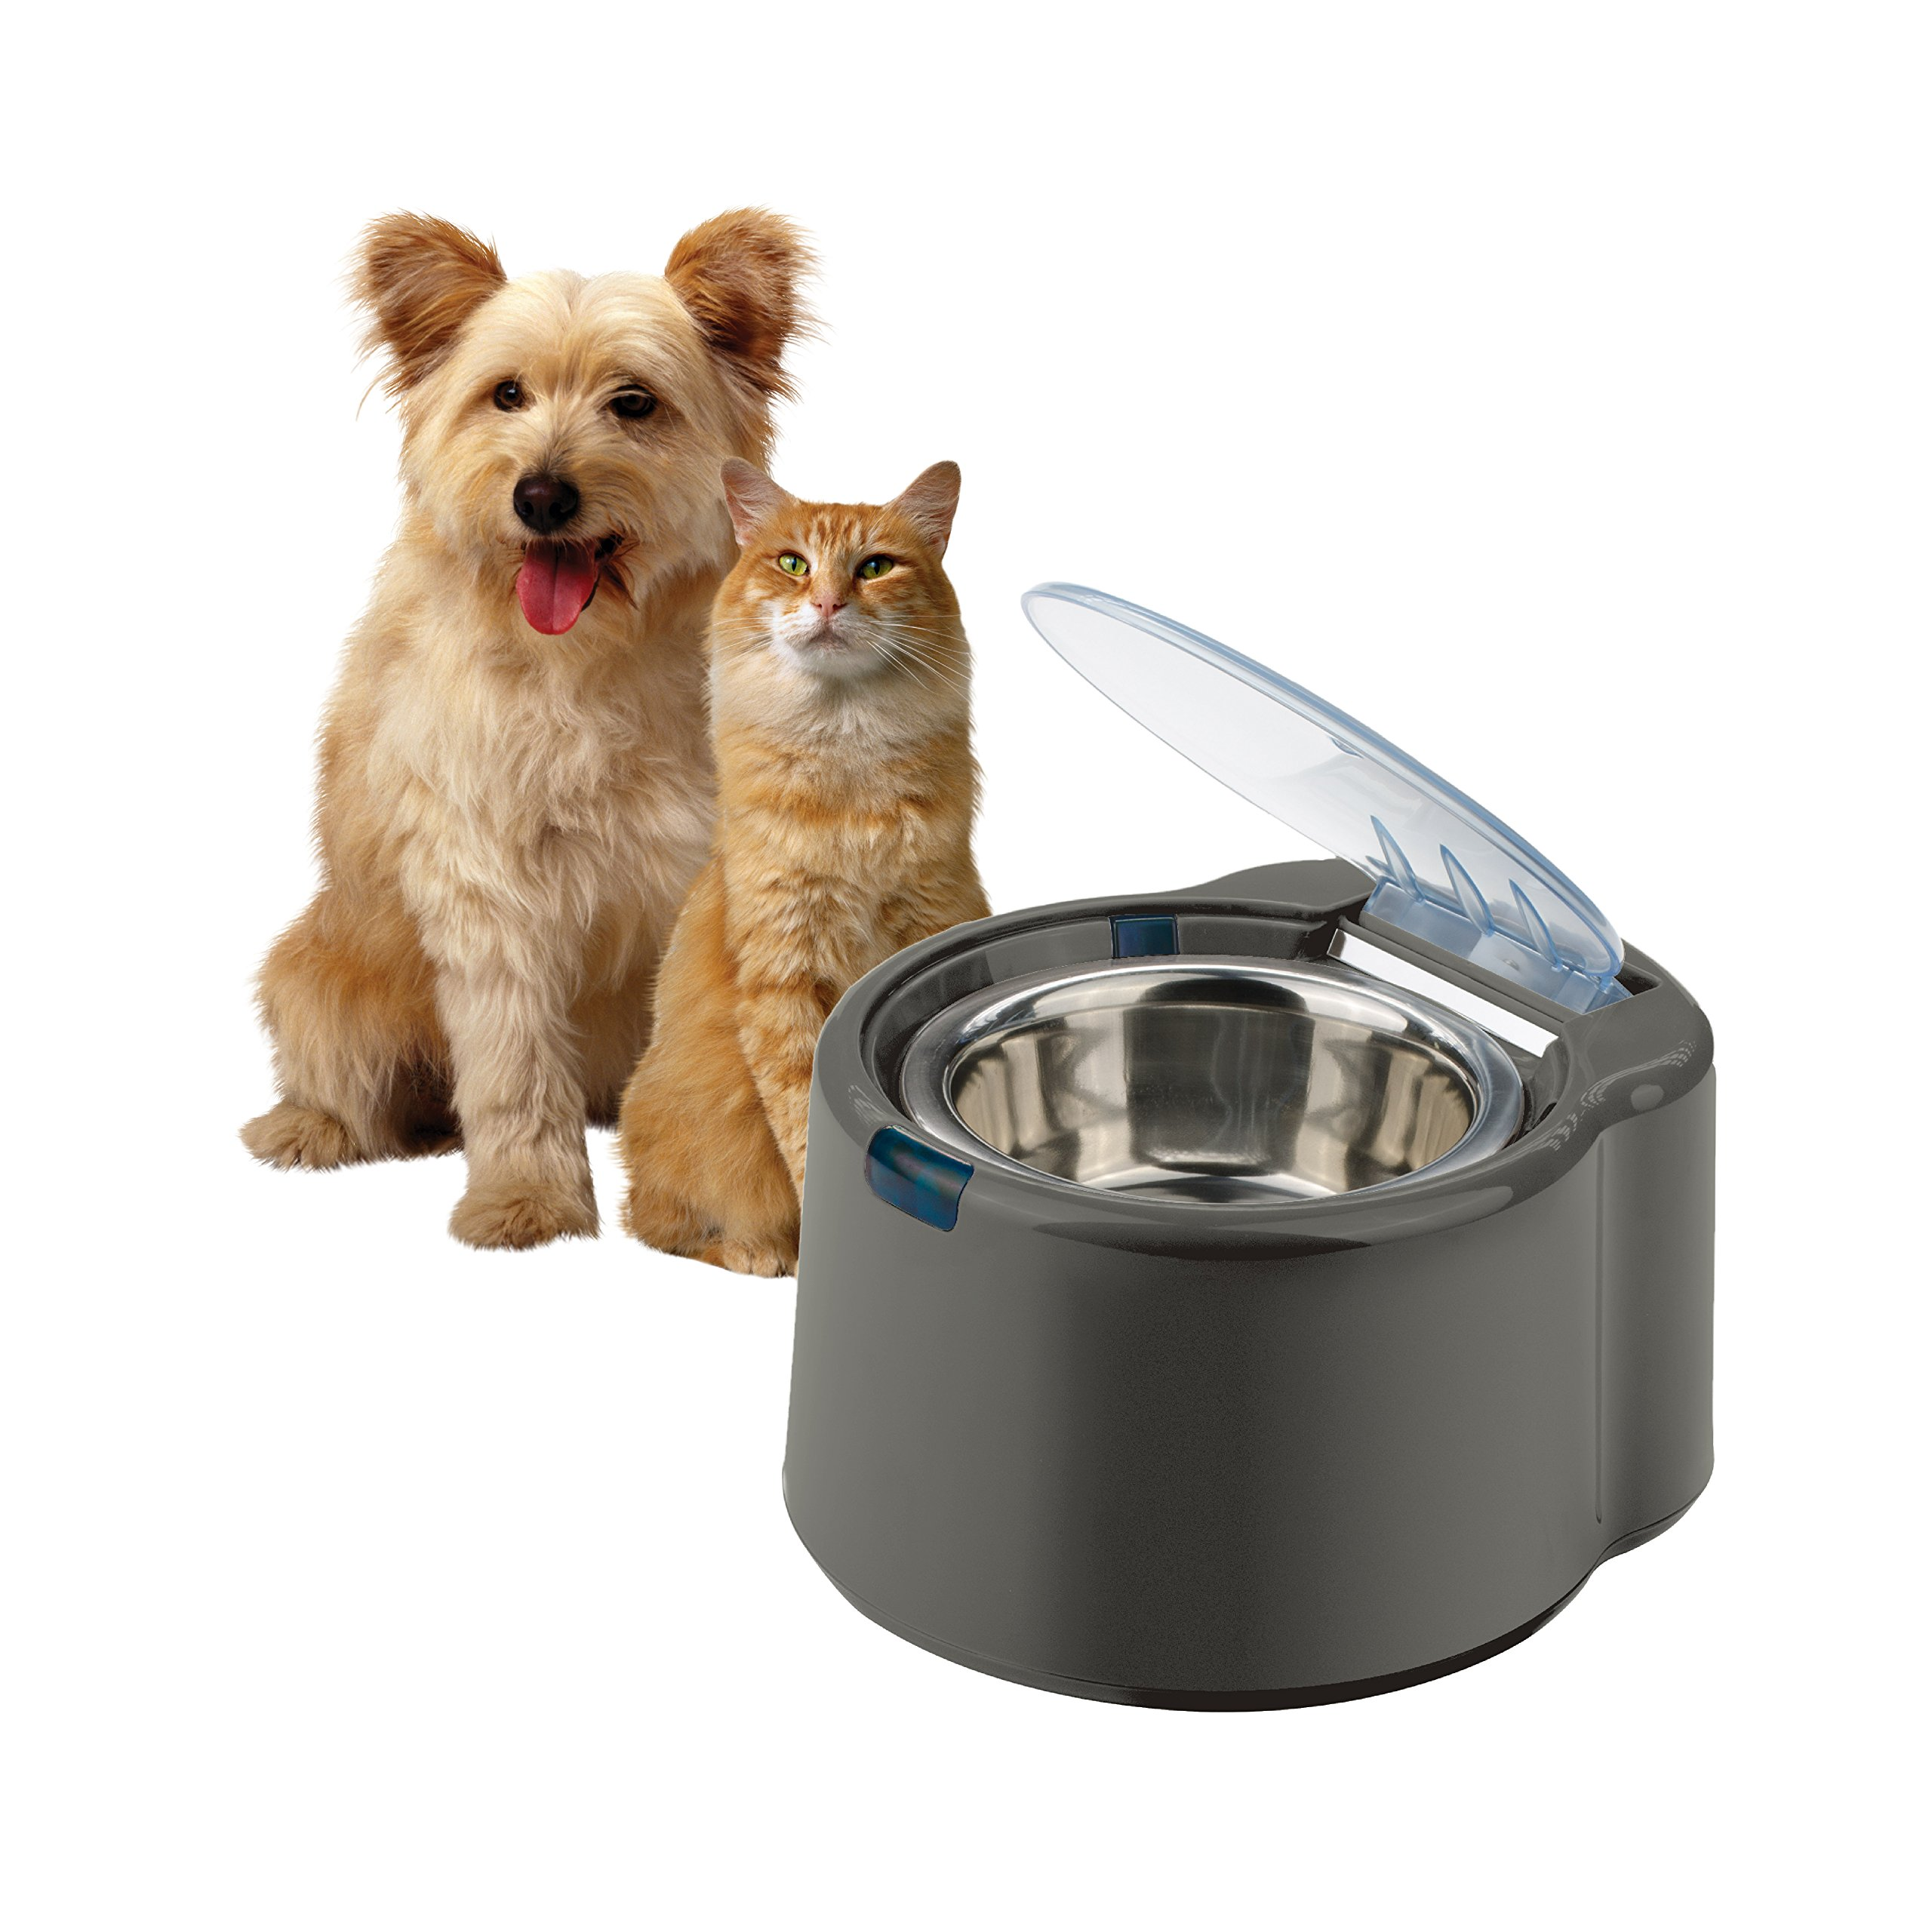 Our Pets Smart Link Intelligent Pet Care Selective Feeder Automatic Pet Bowl by Our Pets (Image #1)